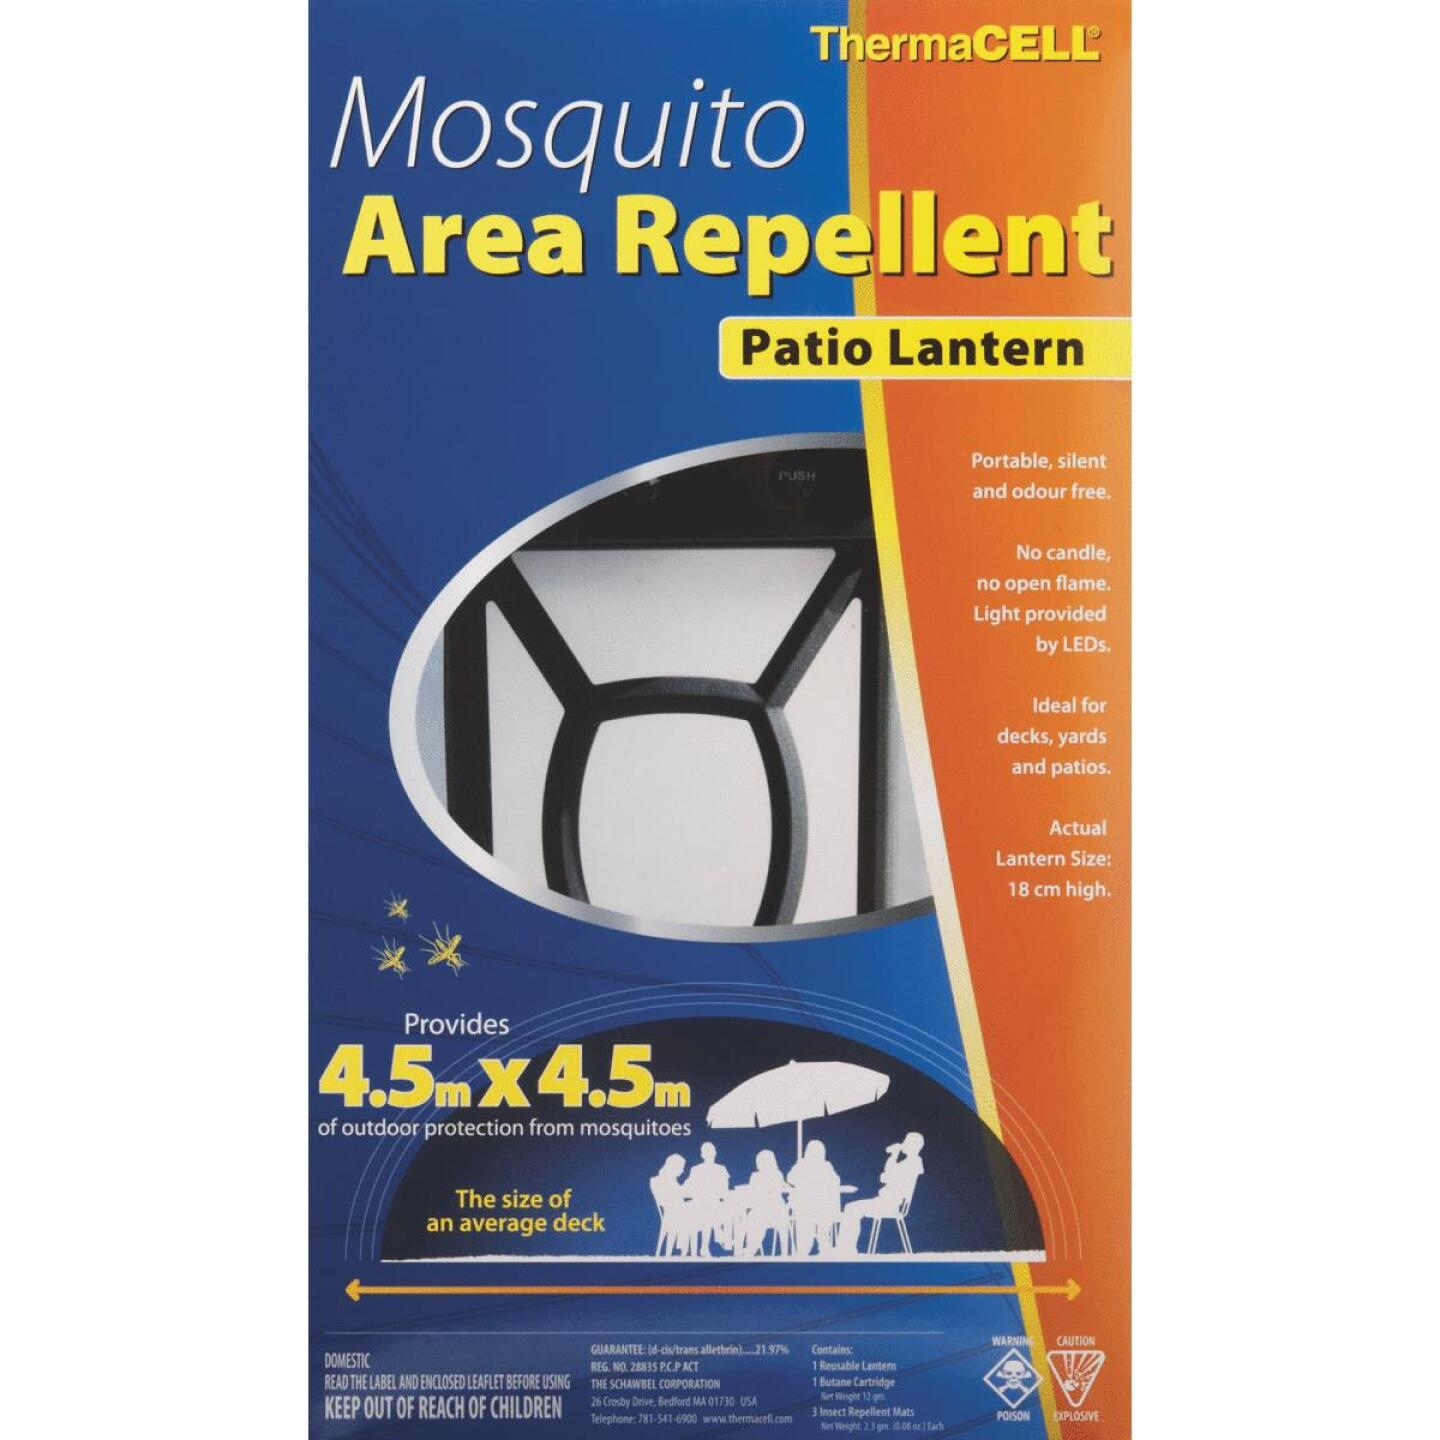 Thermacell 225 Sq. Ft. 12 Hr. Mosquito Repellent Patio Lamp Image 2